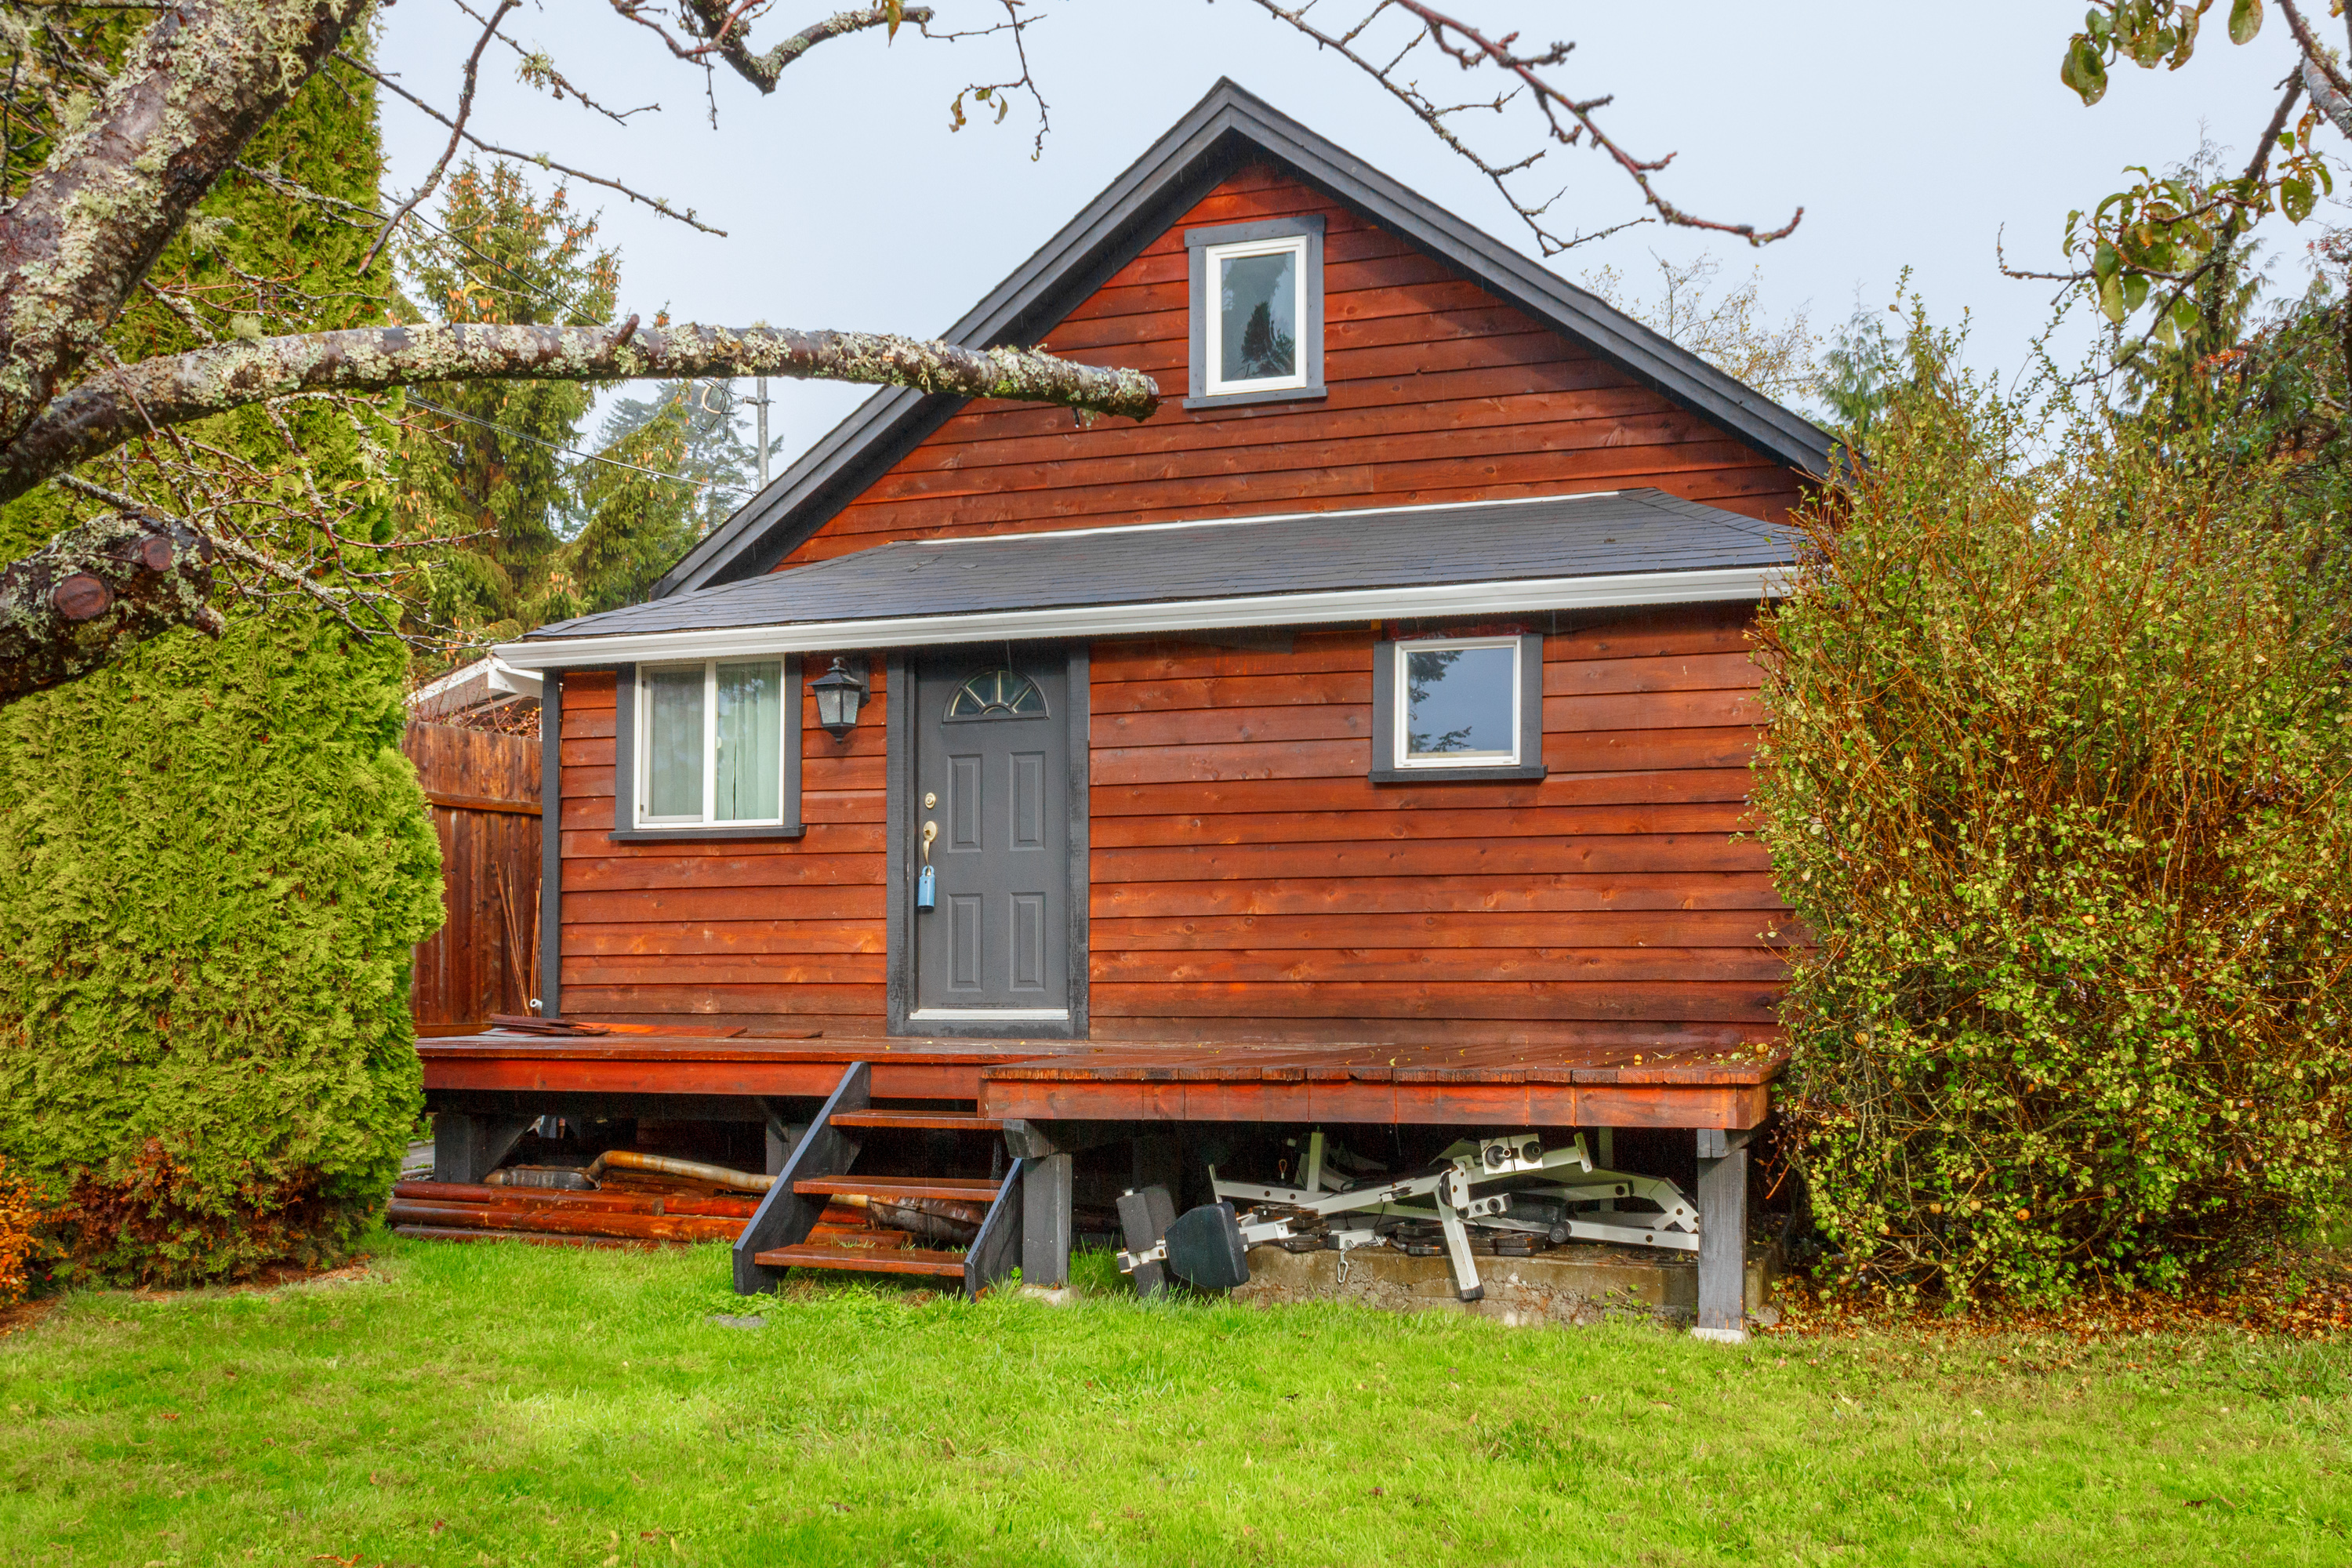 Updated Character Home For Sale - 1750 sqft 3 bed 2 bath - in Saseenos, Sooke